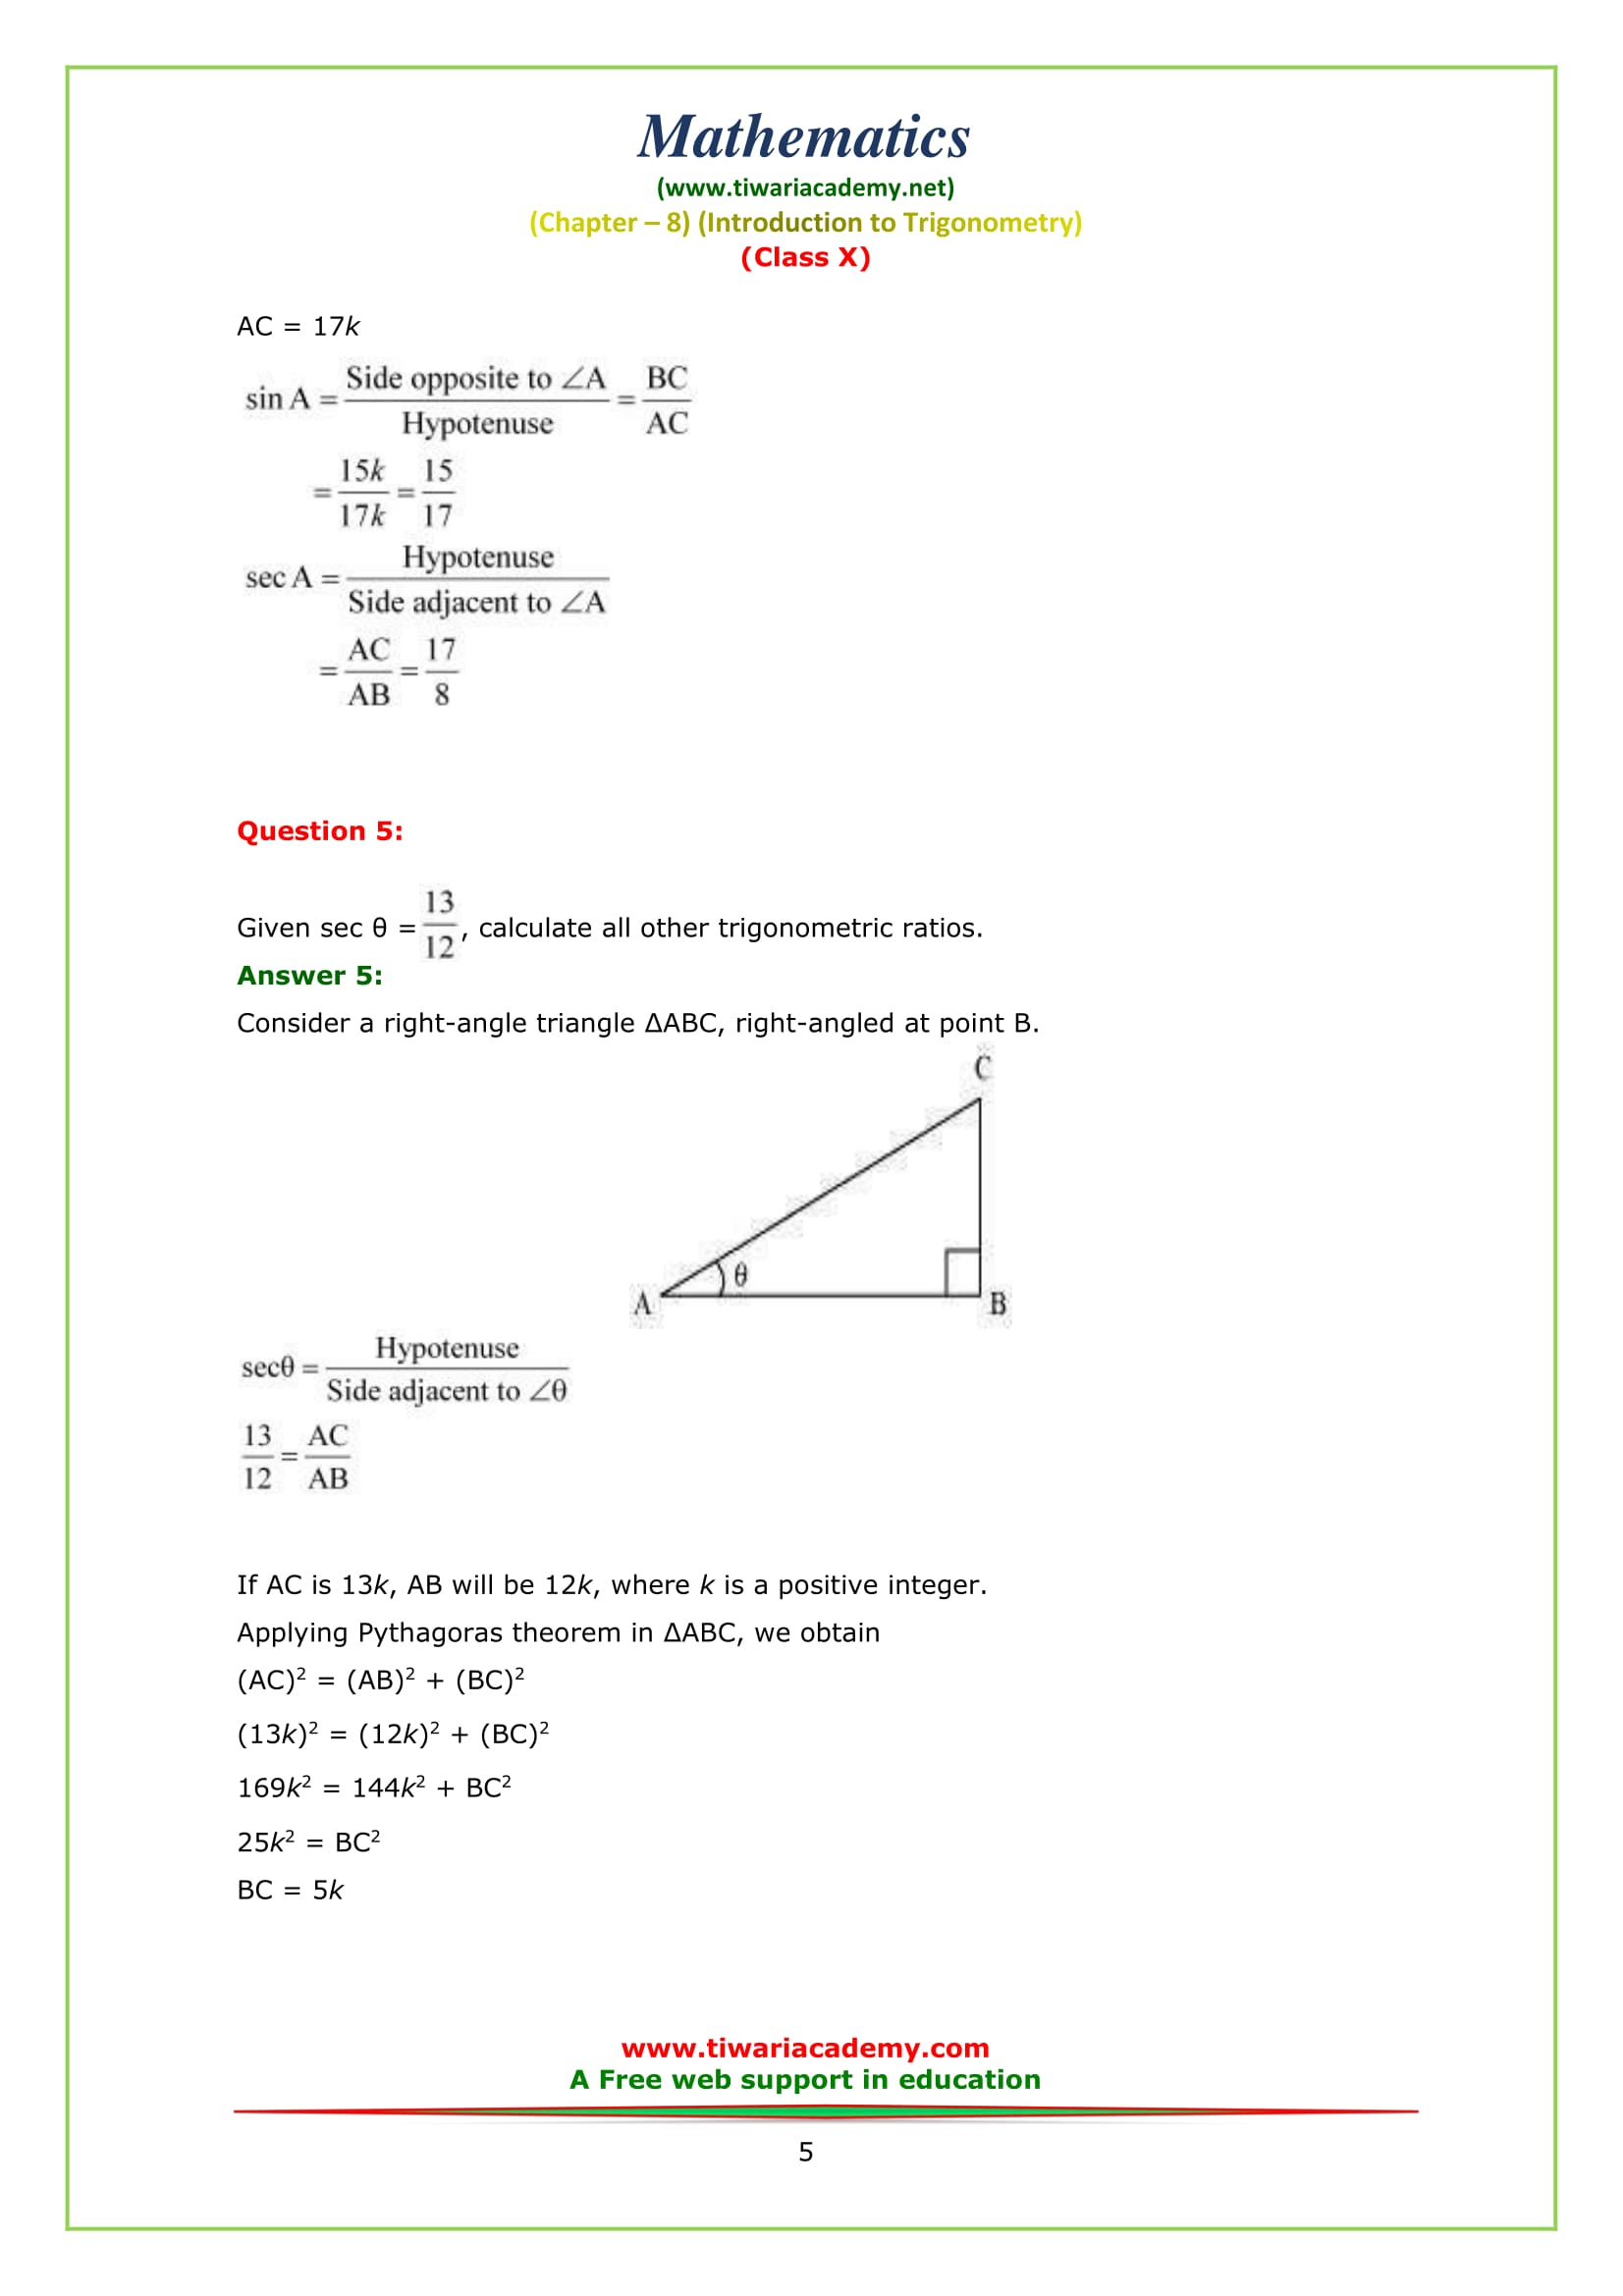 NCERT Solutions for Class 10 Maths Chapter 8 Exercise 8.1 Question 5